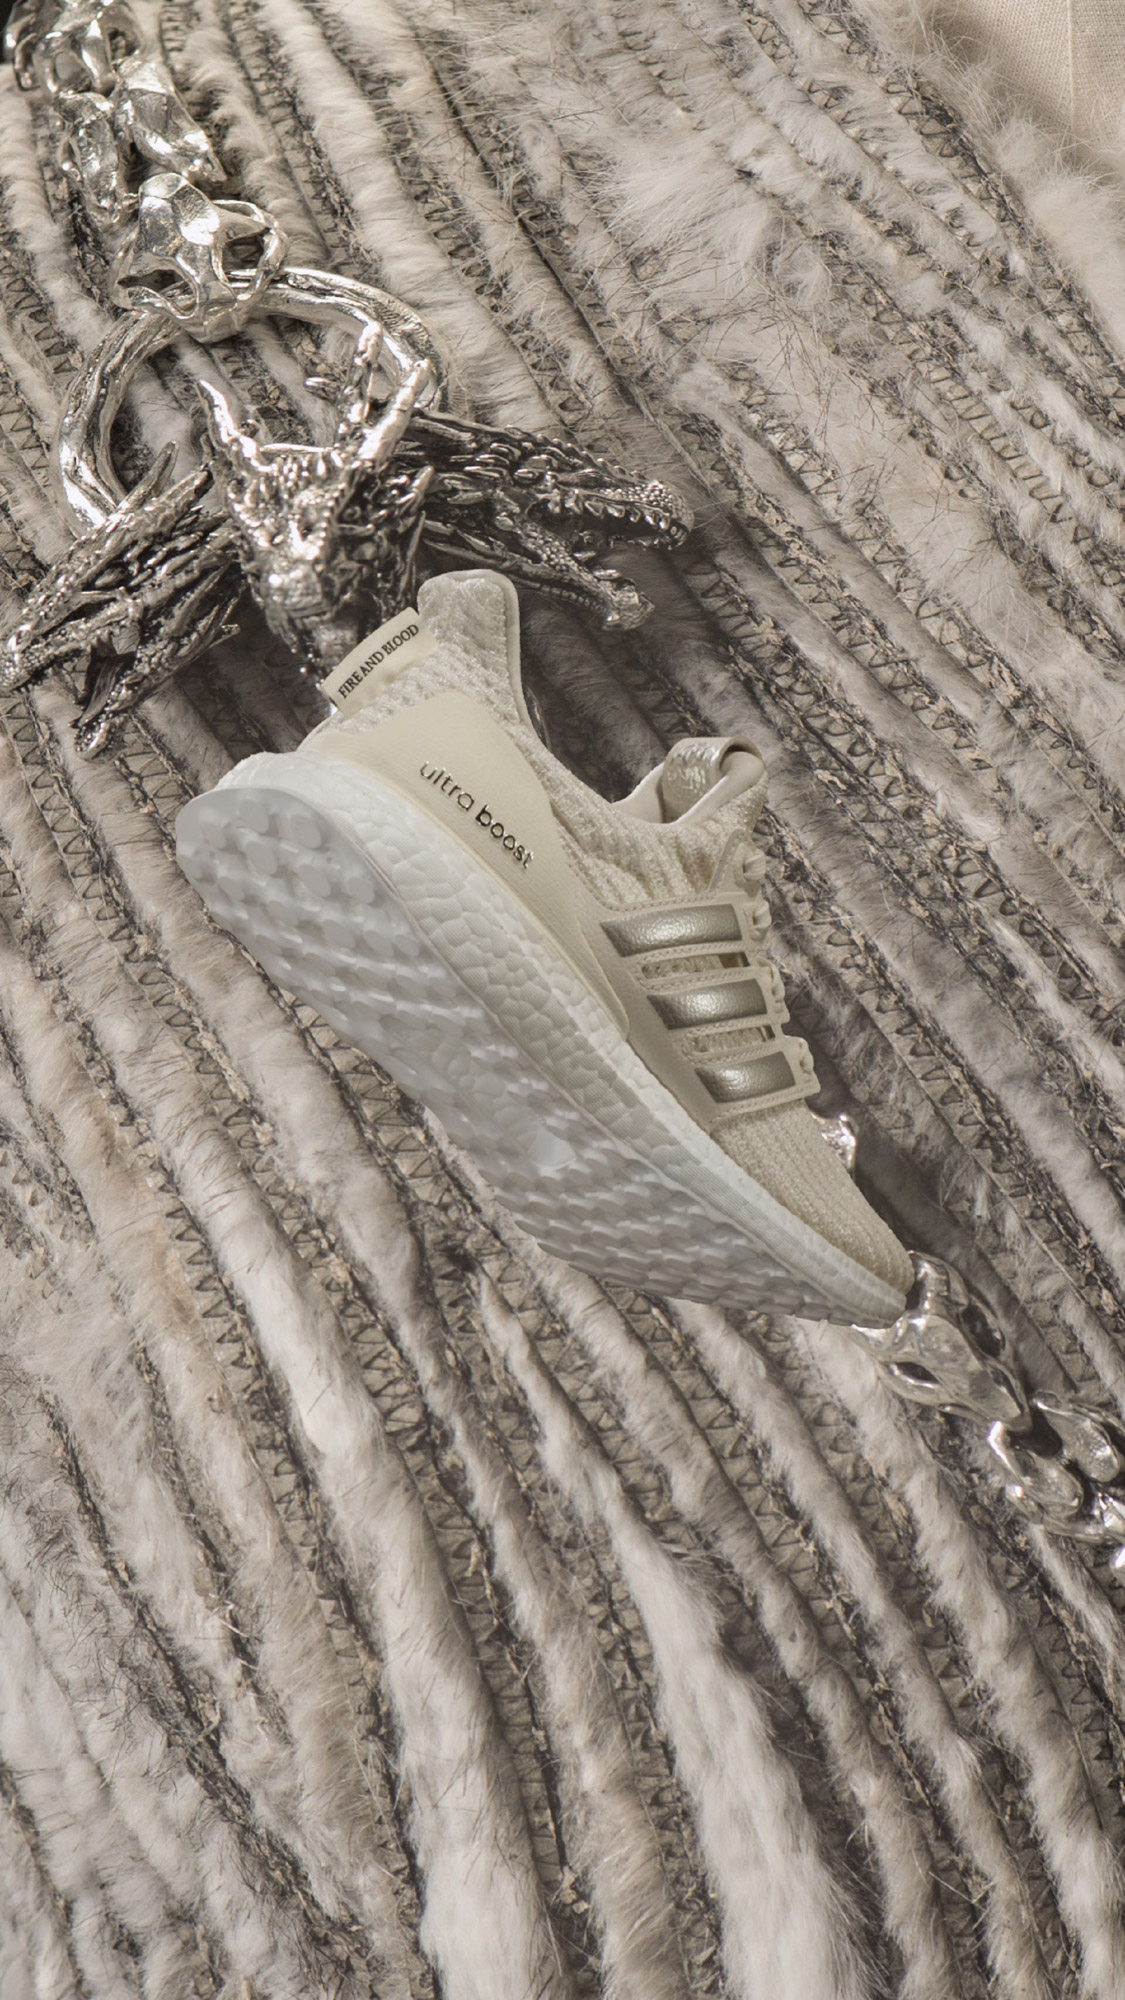 Game of Thrones x adidas UltraBOOST 11